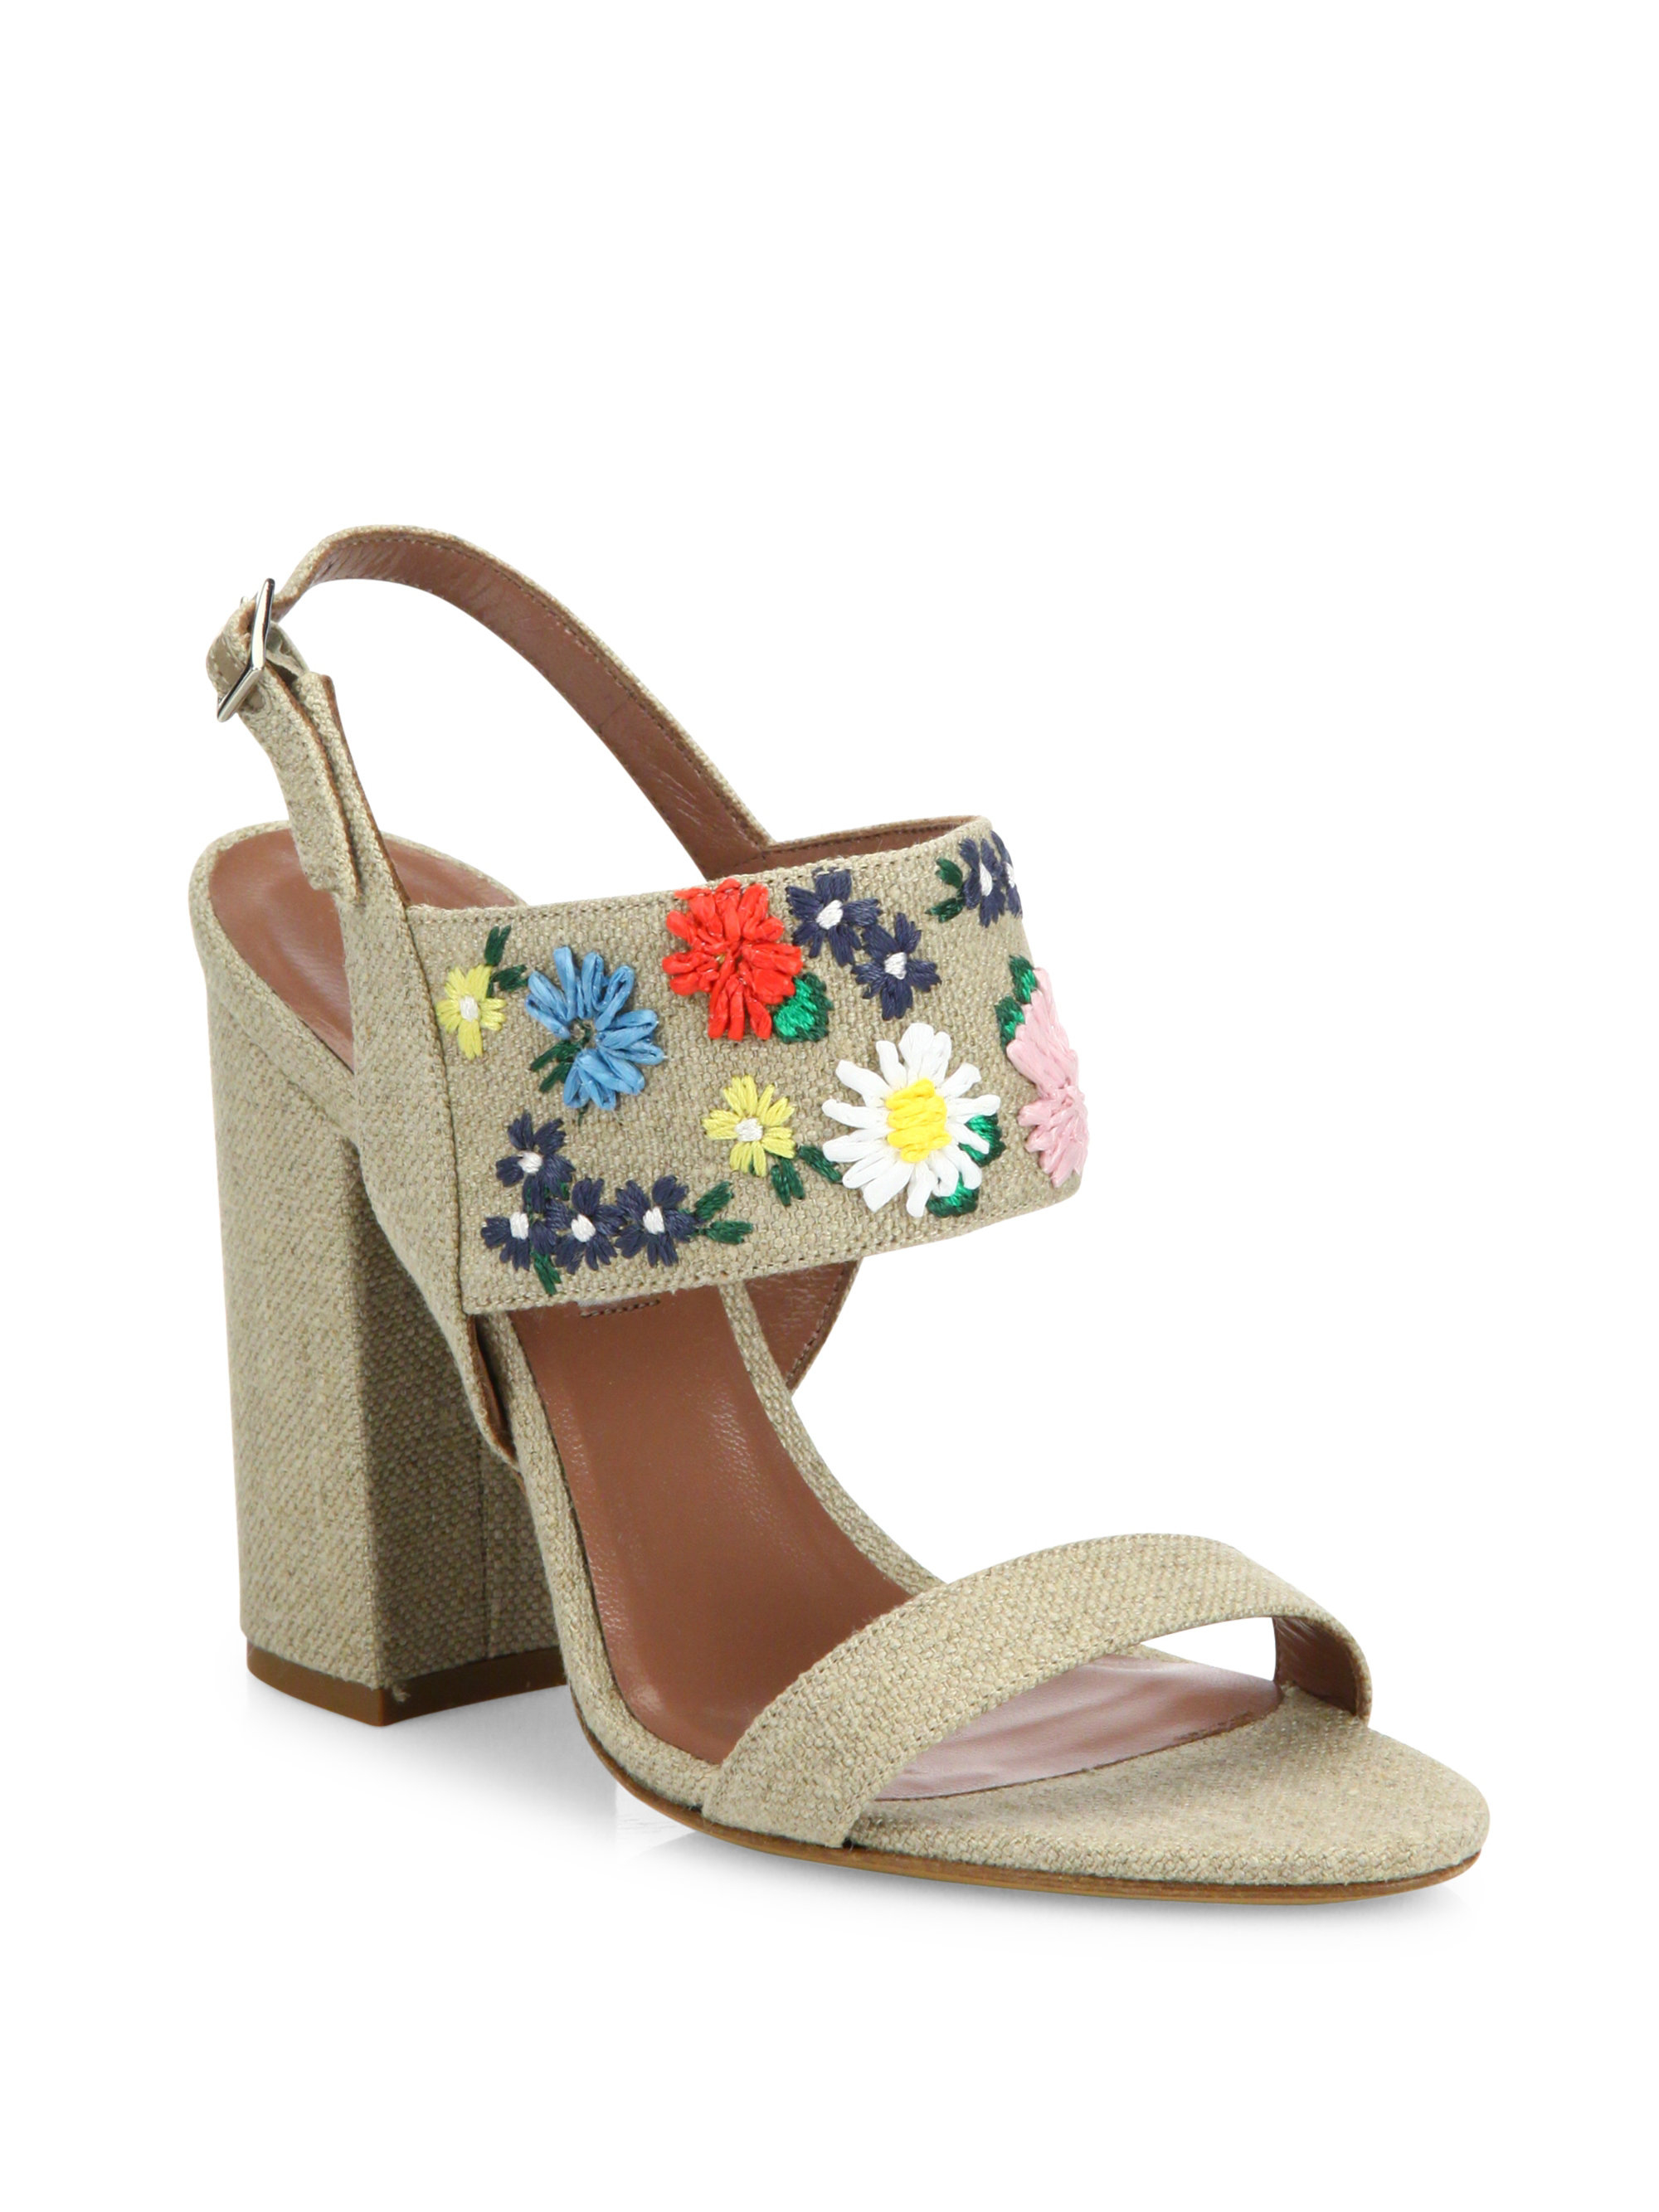 Tabitha Simmons Raffia Embroidered Sandals new for sale sale very cheap fast delivery cheap online buy cheap deals MgzVfnNb9x